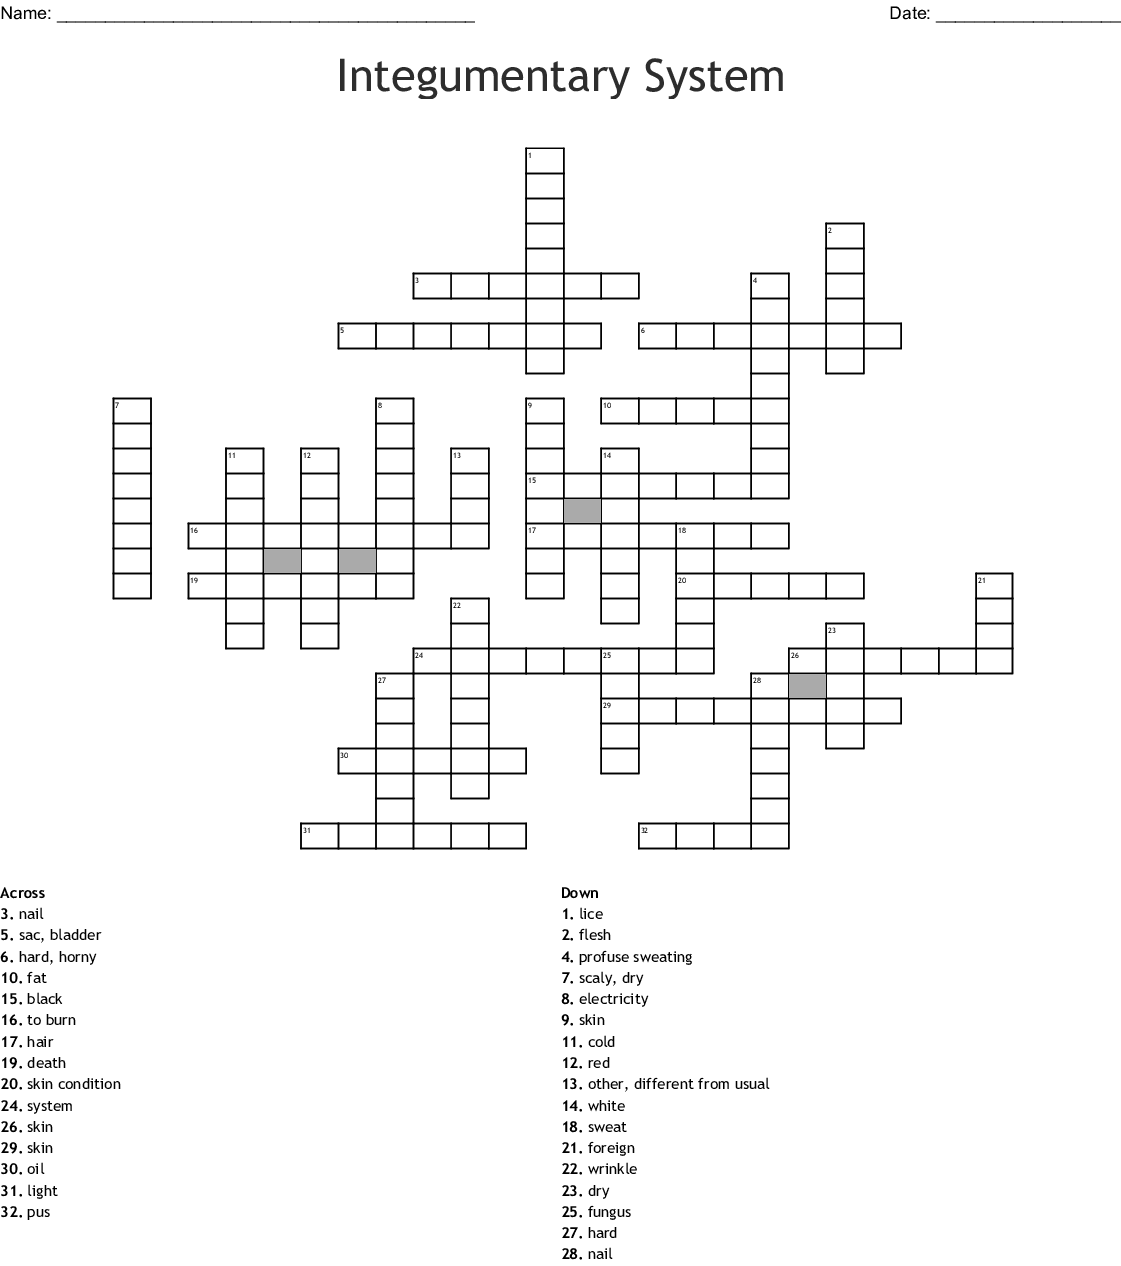 Integumentary Terminology Crossword - WordMint